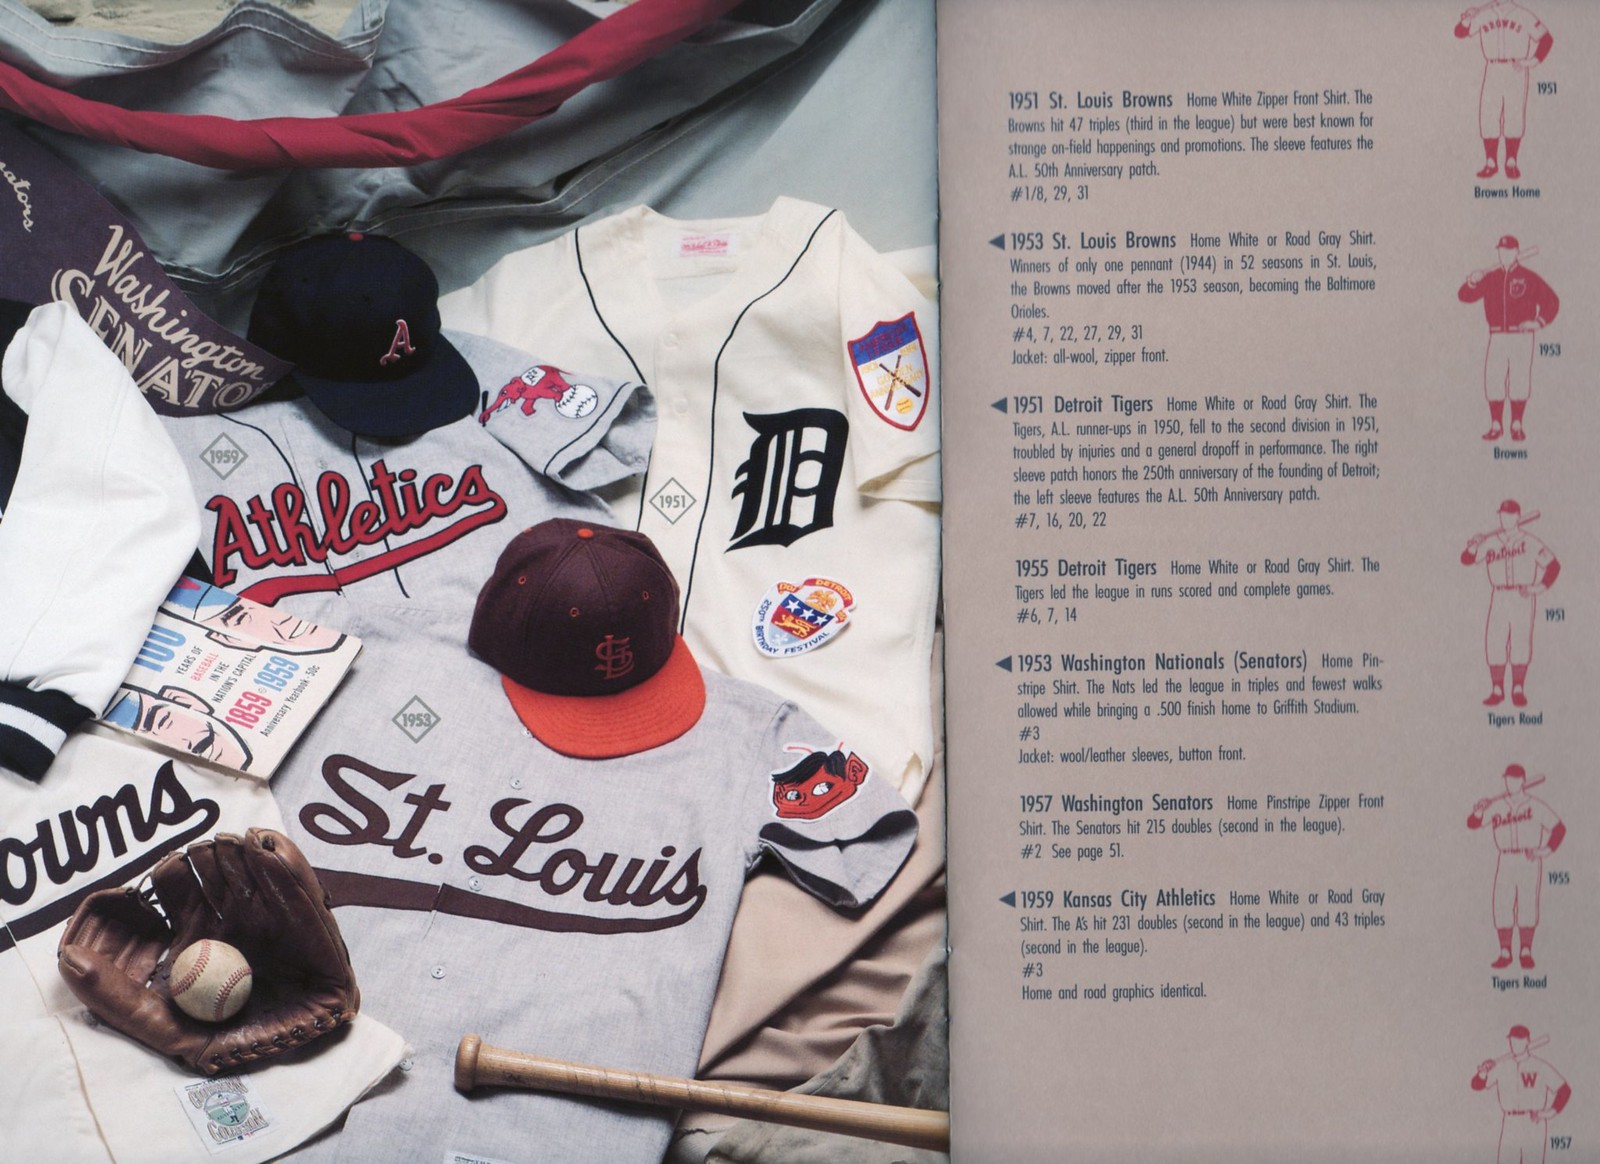 d7227a5f96 ... the retro sports company Mitchell & Ness came out with its first  mail-order catalog (the cover of which is shown above). The catalog's pages  were dotted ...